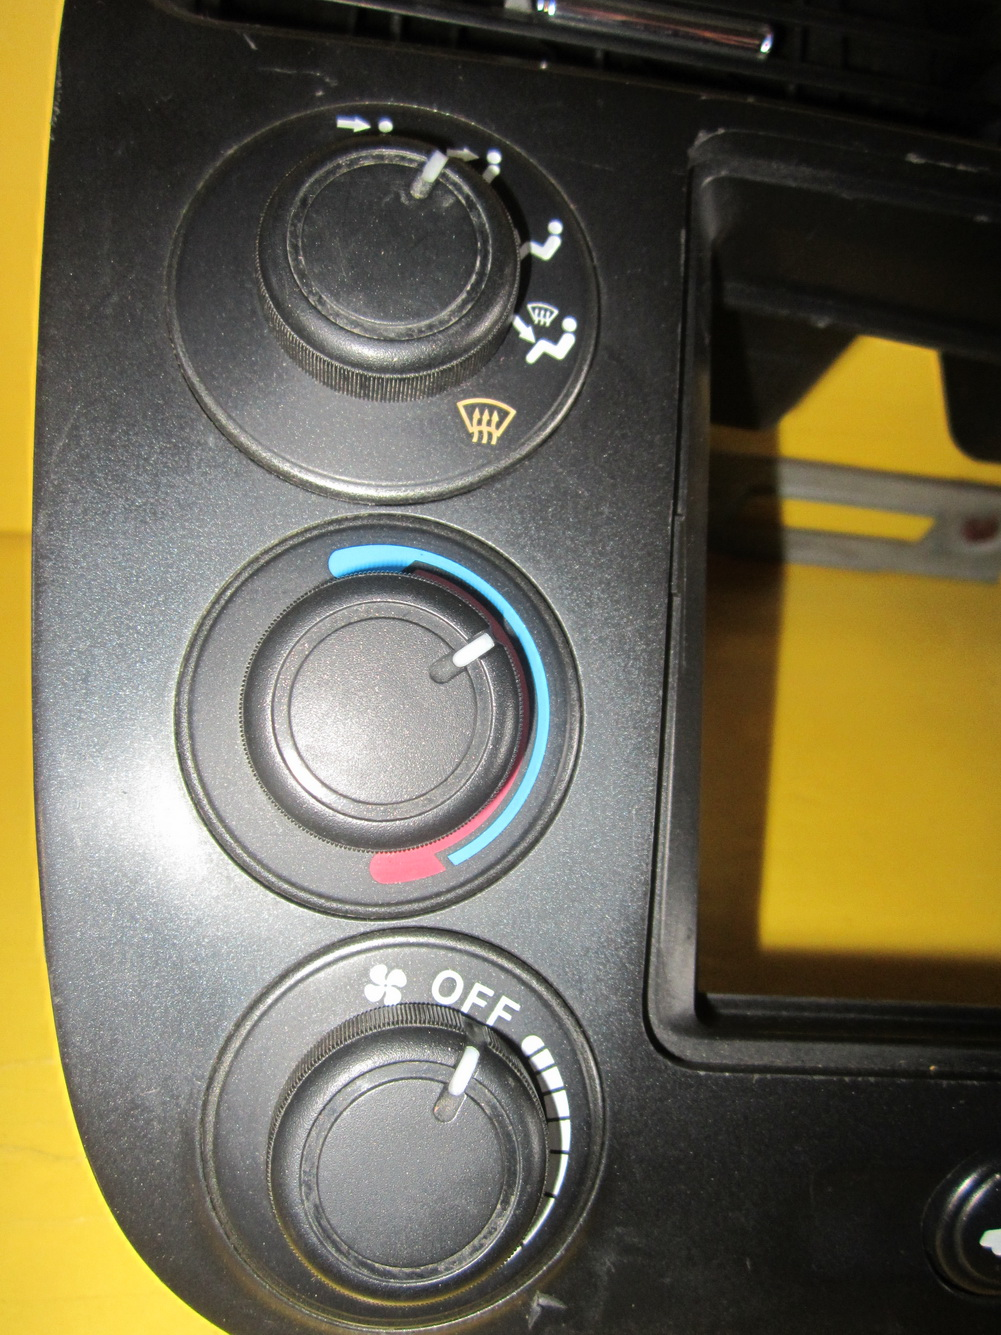 2001 2002 2003 2004 2005 HONDA CIVIC CLIMATE CONTROL RADIO FACE PLATE BEZEL OEM: Used Auto Parts ...